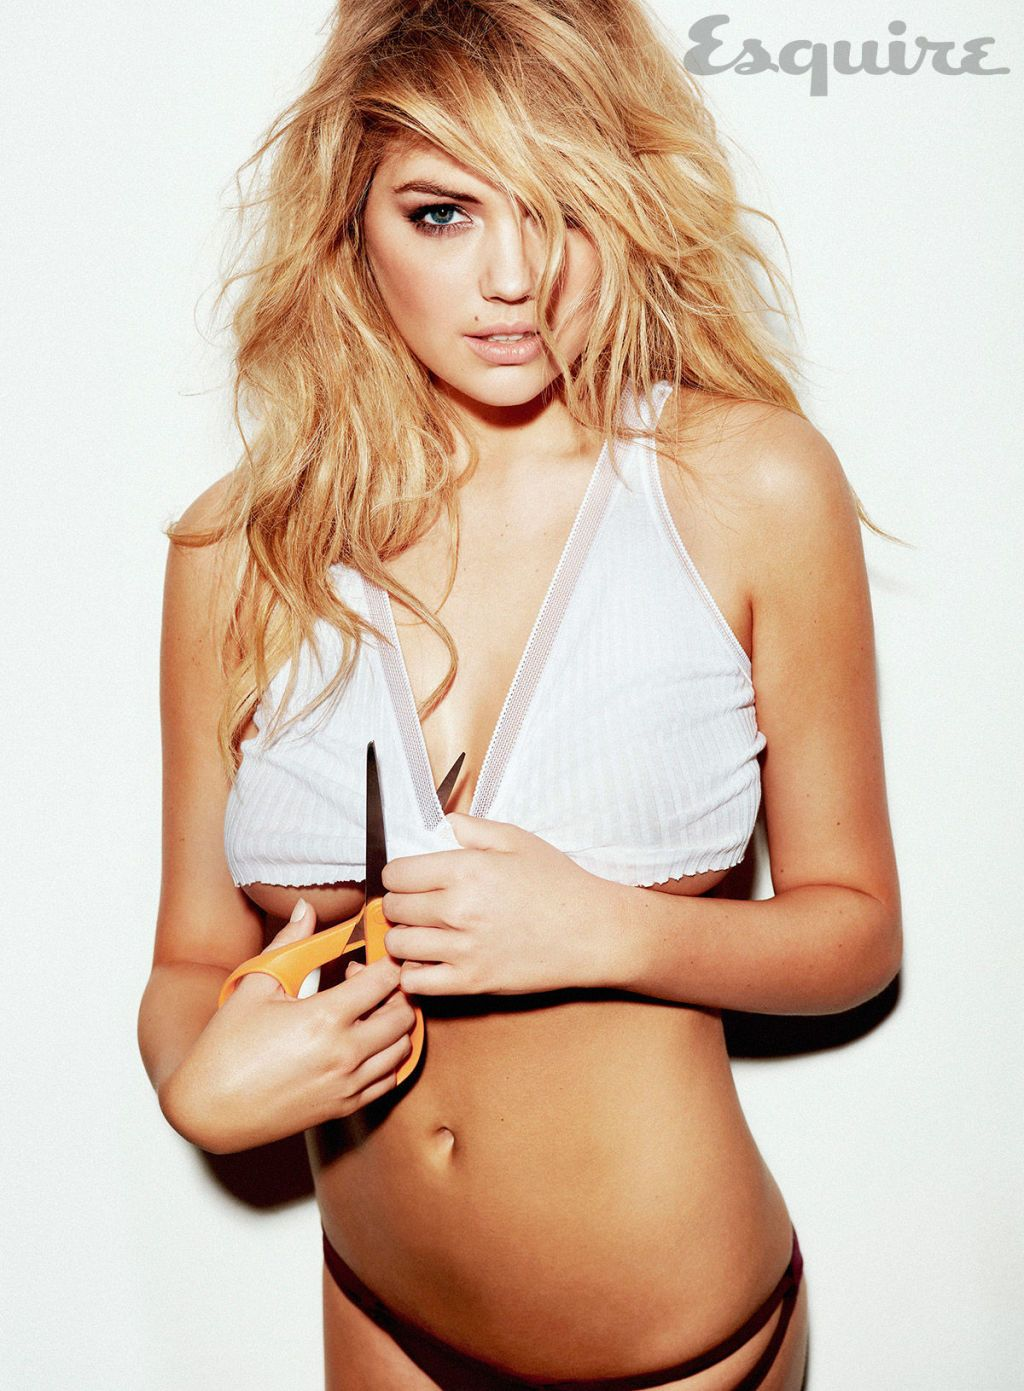 Lovely Kate Upton  8 Things You Don t Know About Her  a2671fd913